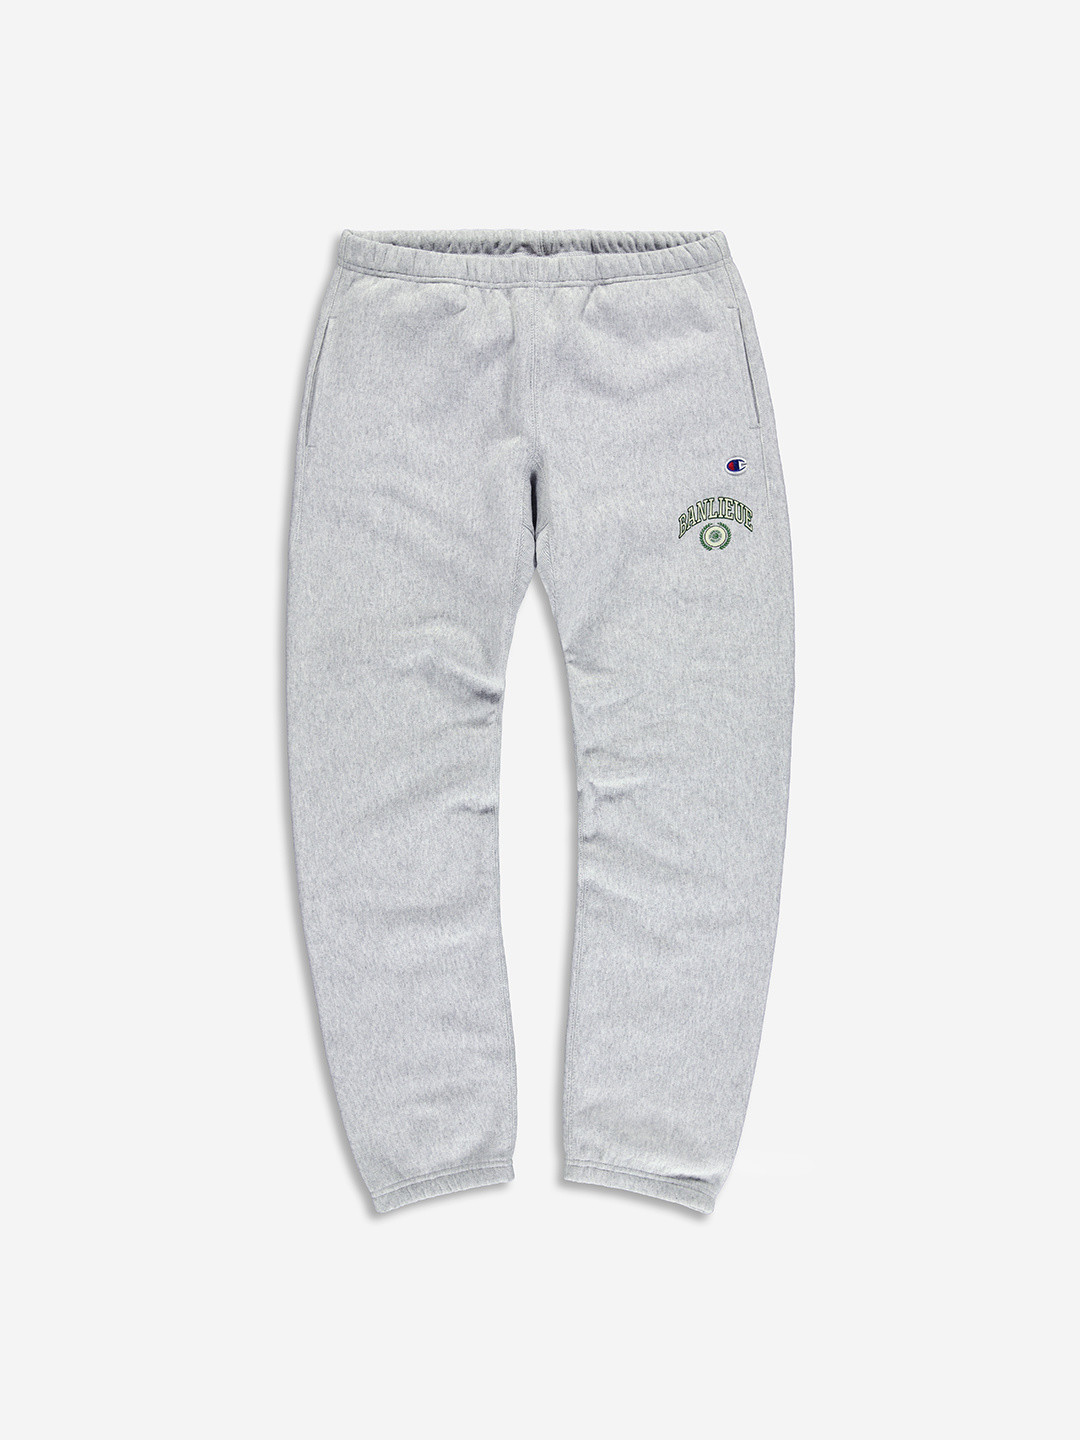 BANLIEUE X CHAMPION SWEATPANTS GREY